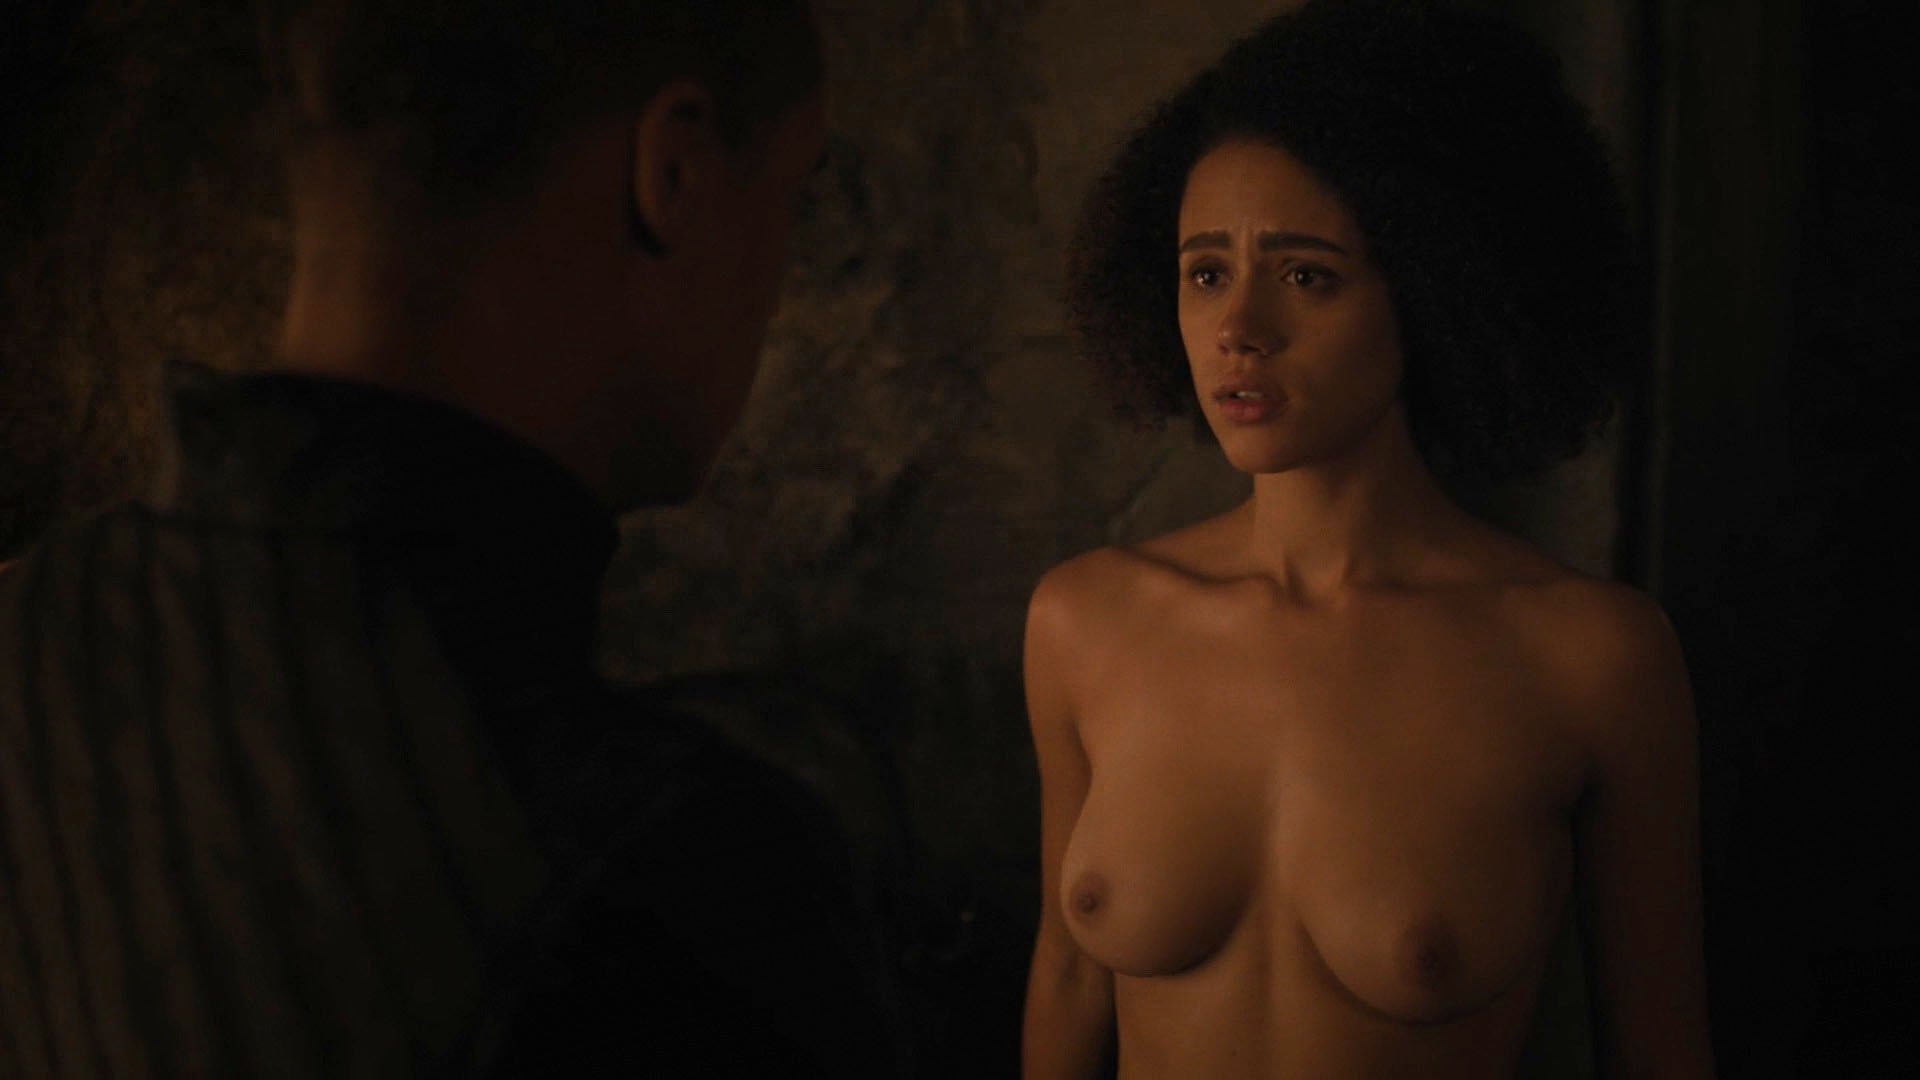 Nude Video Celebs  Nathalie Emmanuel Nude - Game Of Thrones S07E02 2017-7805